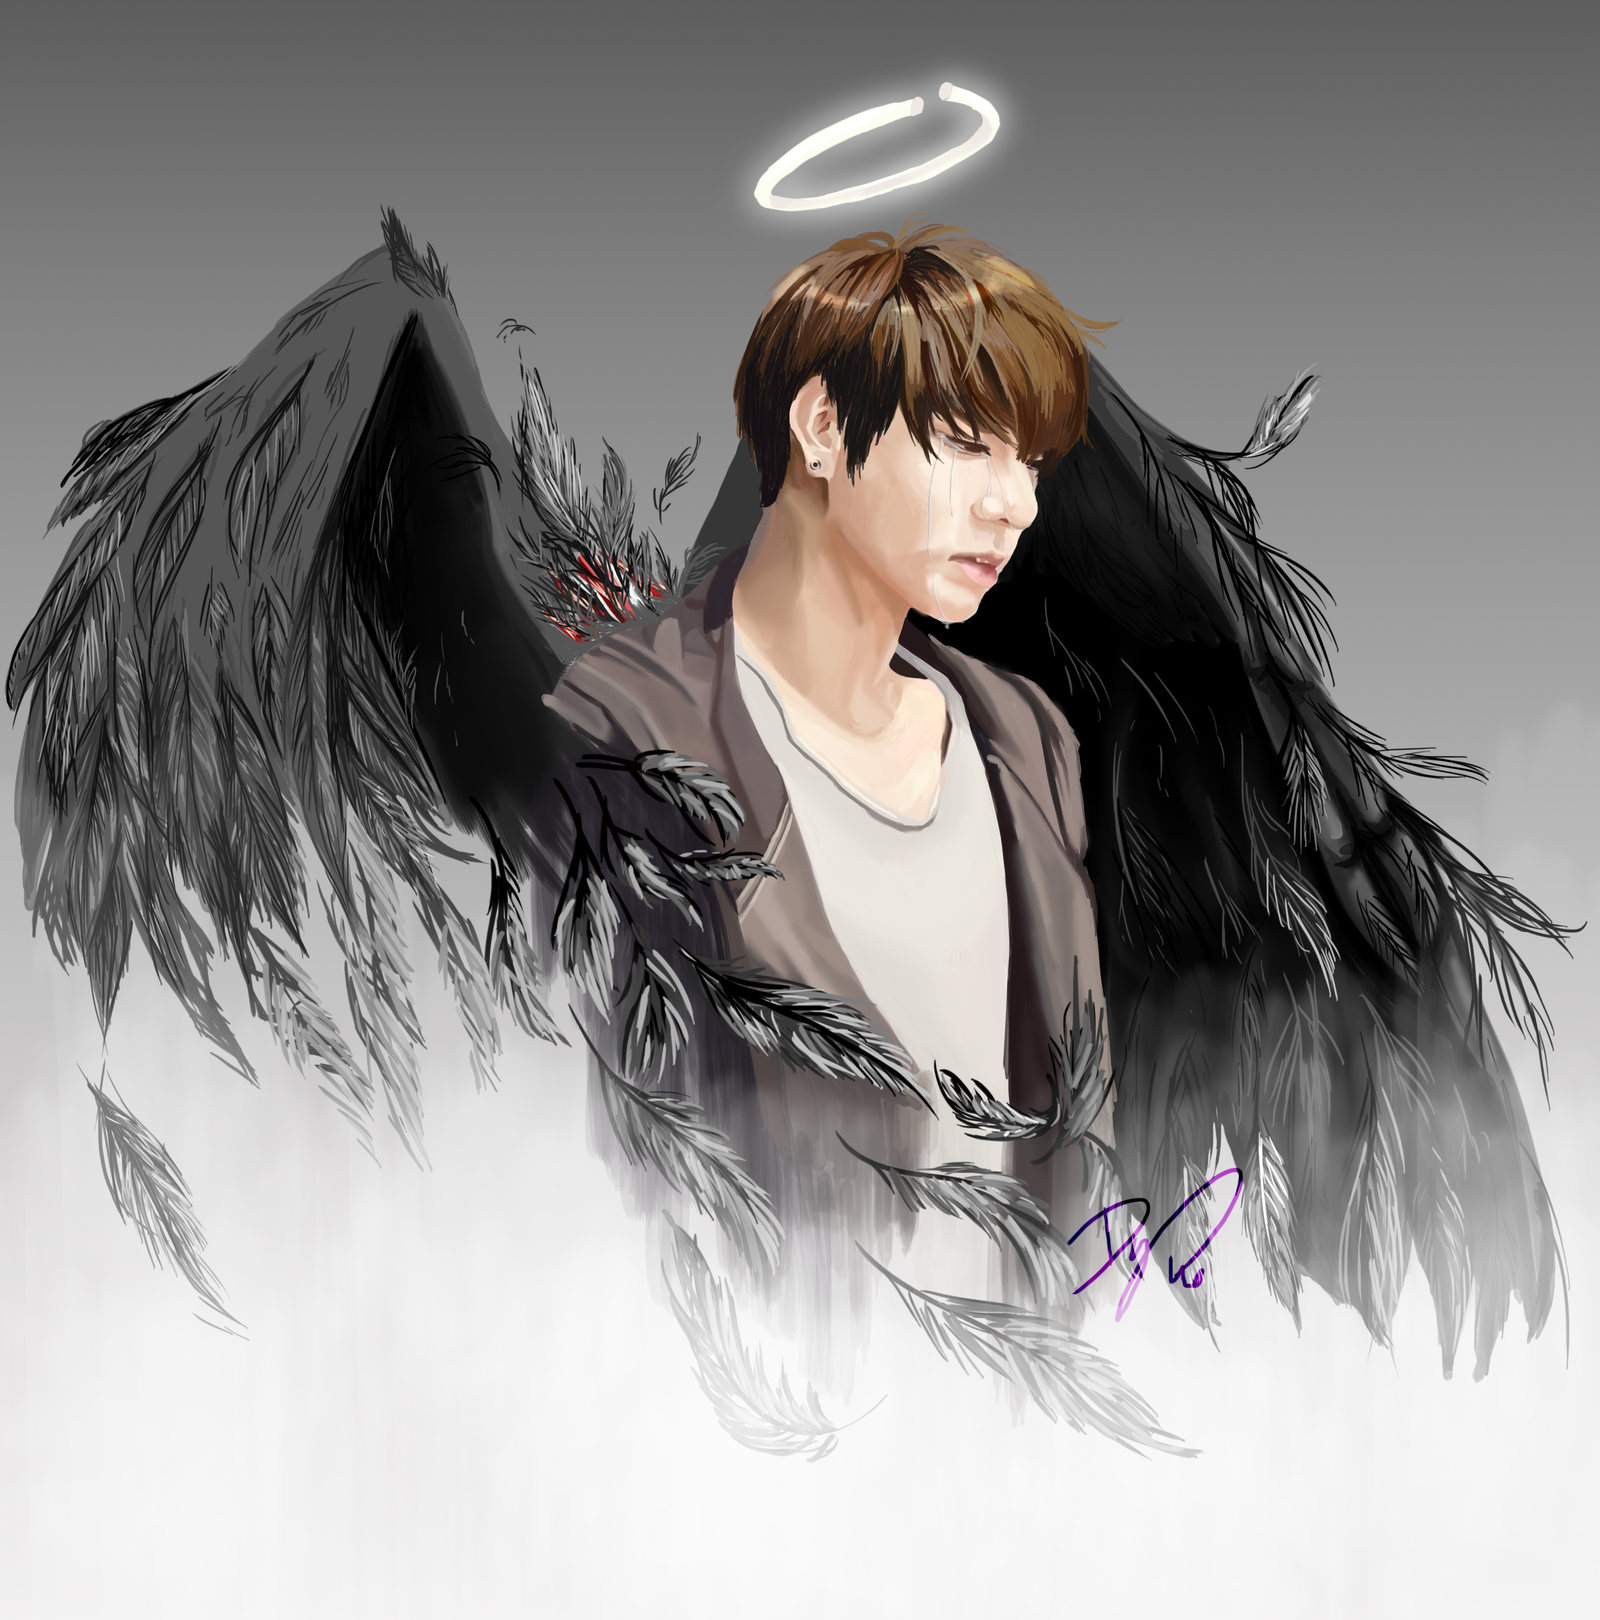 [BTS] Fallen Angel Jungkook_No wound